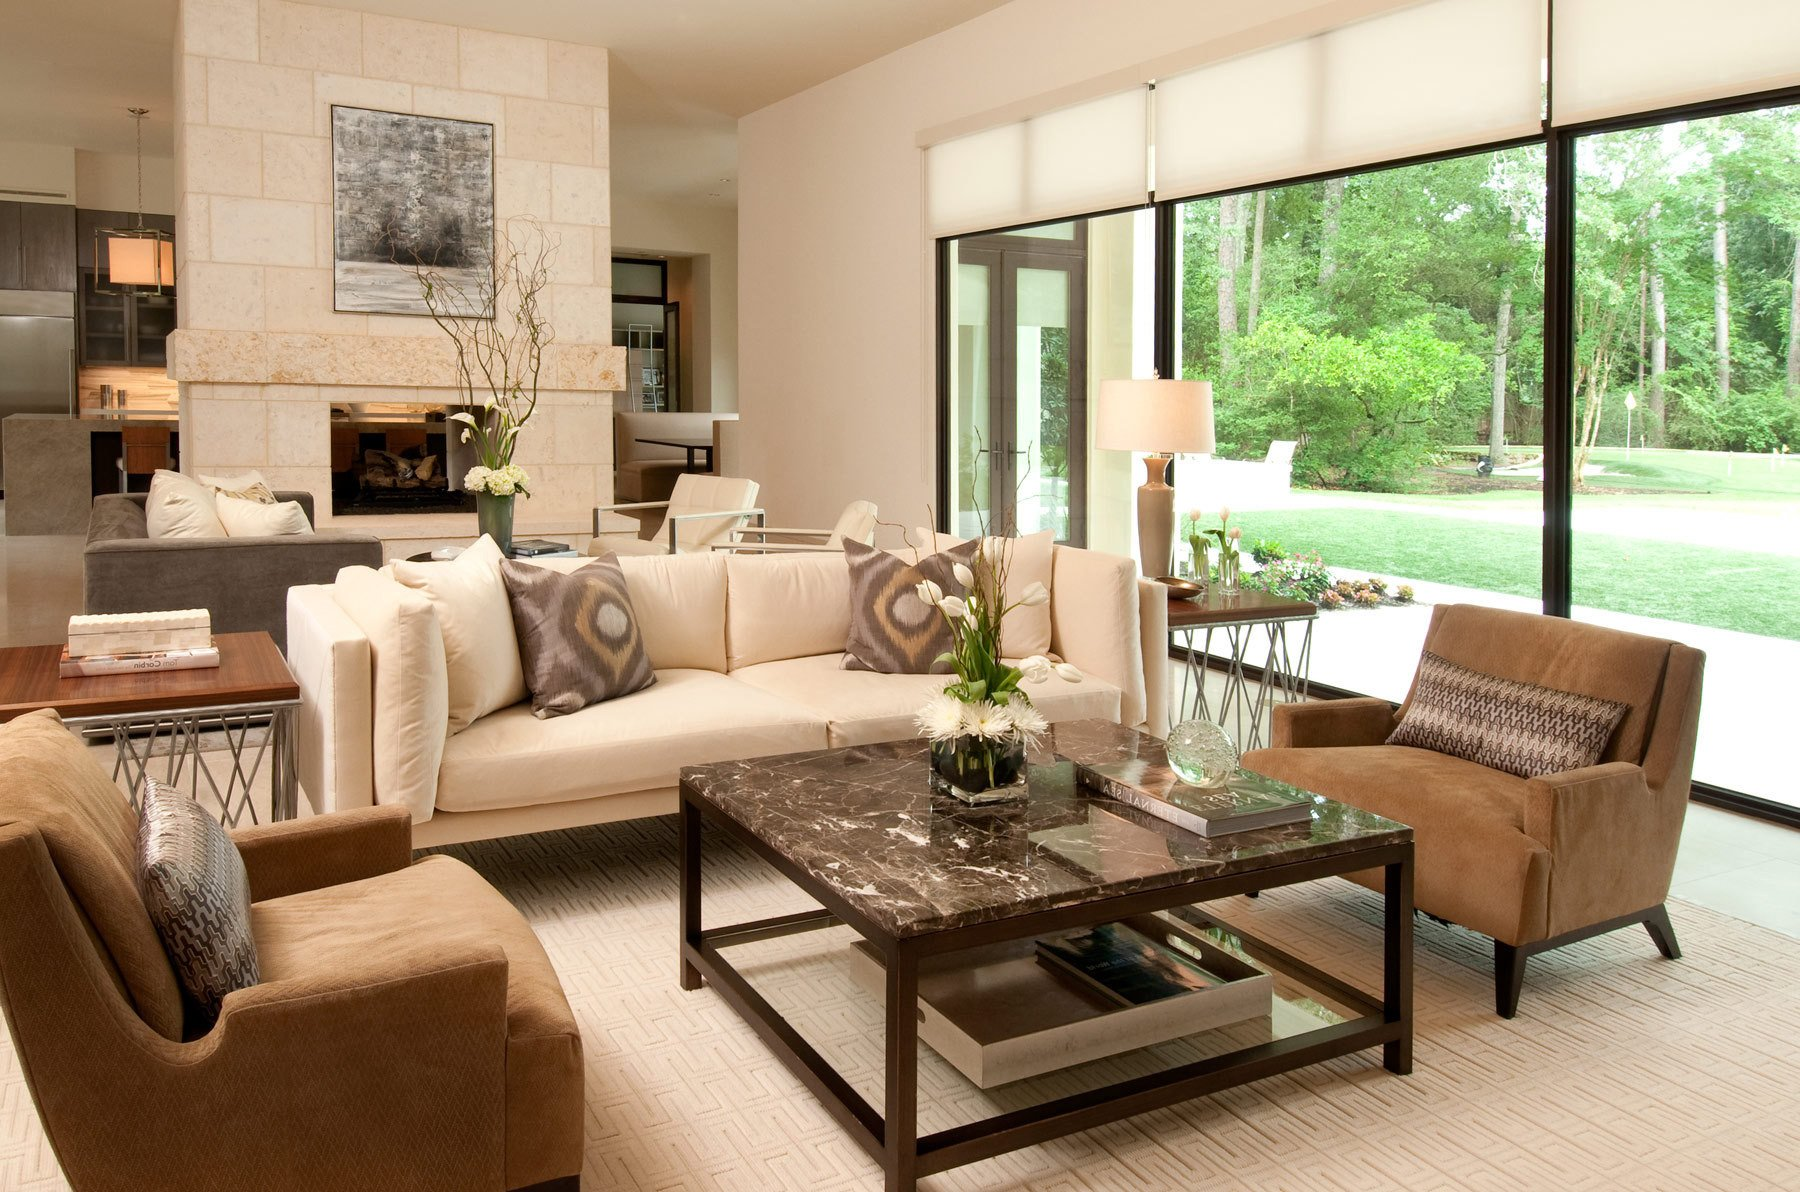 Classy Comfortable Living Room 27 fortable Living Room Design Ideas Decoration Love